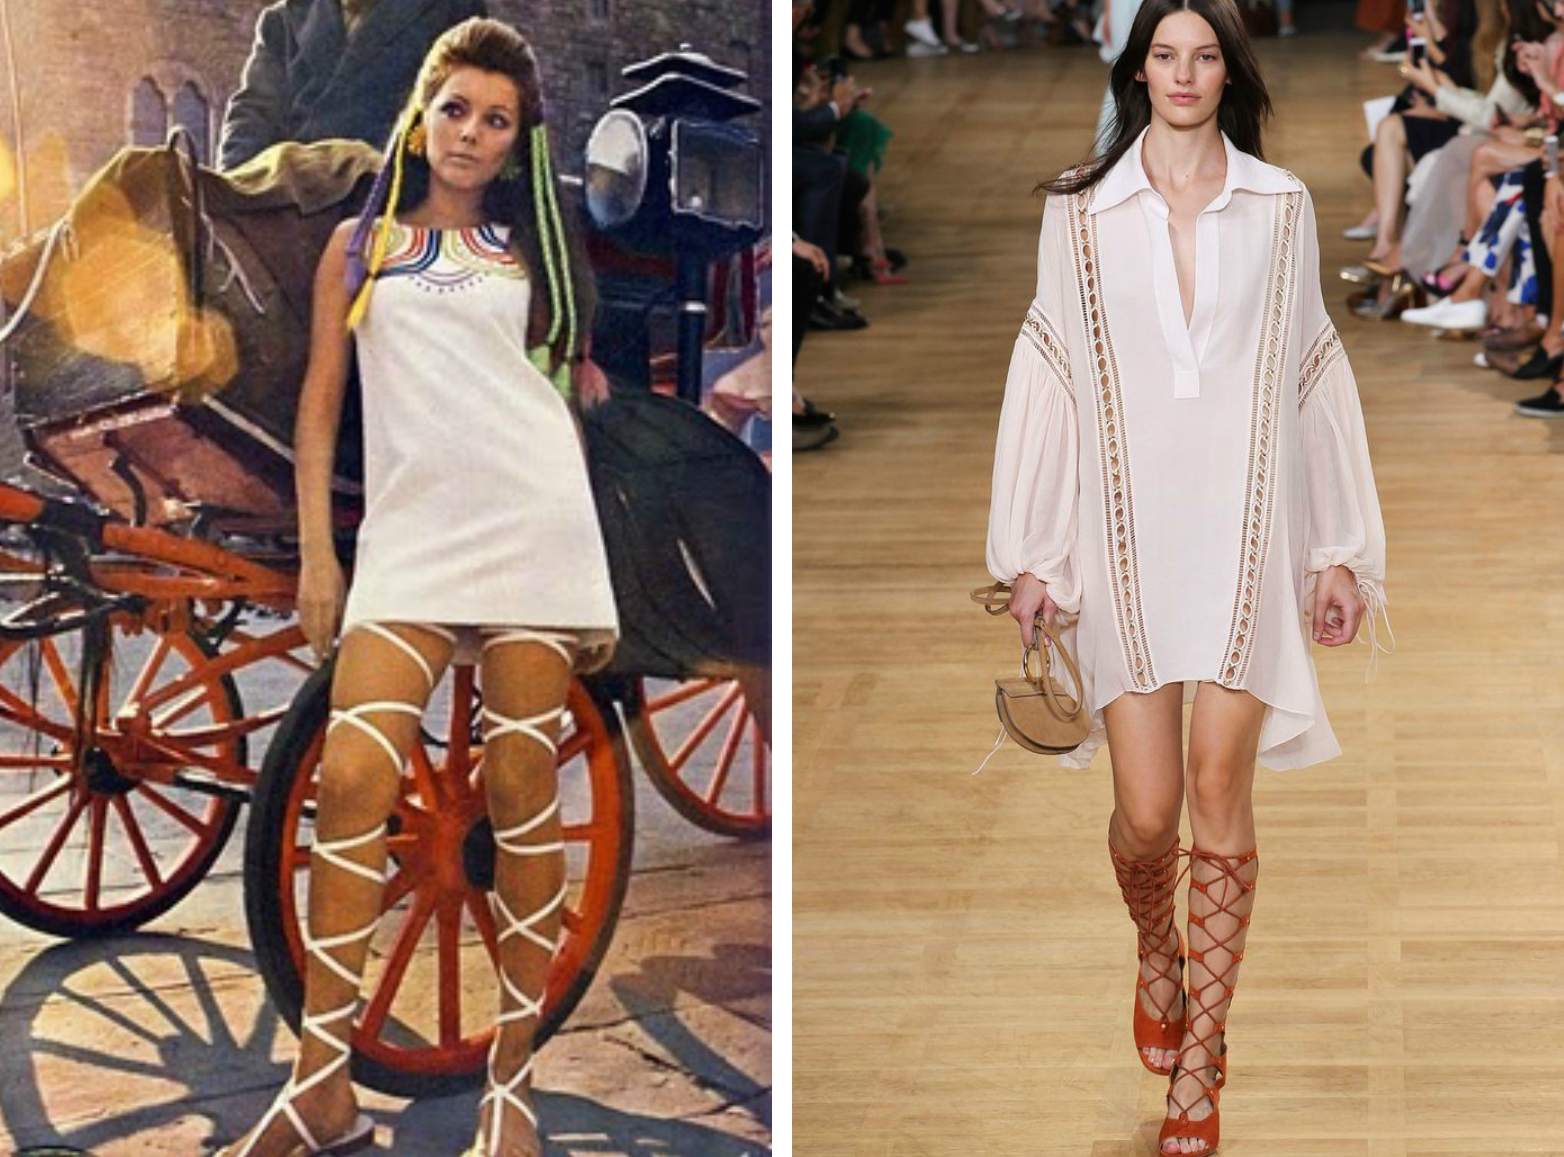 From left to right: Mini dress by John Bates, w orn with thigh-high lace-up gladiator sandals,  for British, 'Vogue' magazine 1967, and the Chloé Spring 2015 Ready-to-Wear Collection.